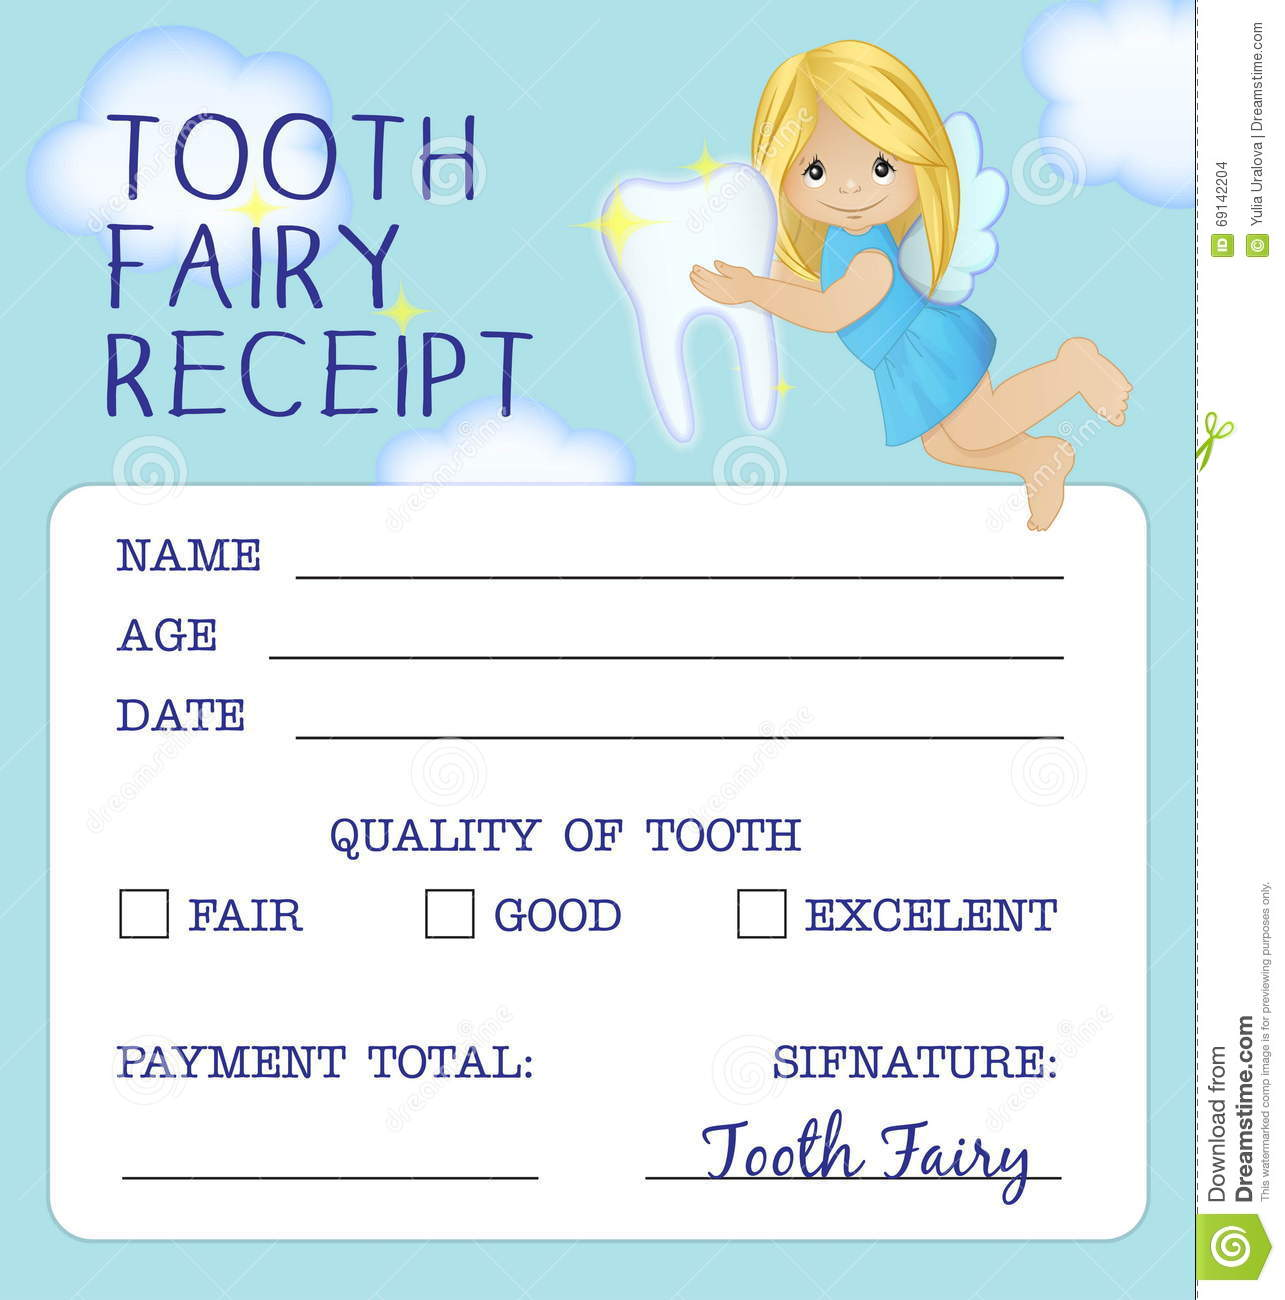 Tooth Fairy Receipt Certificate Design Stock Vector Illustration